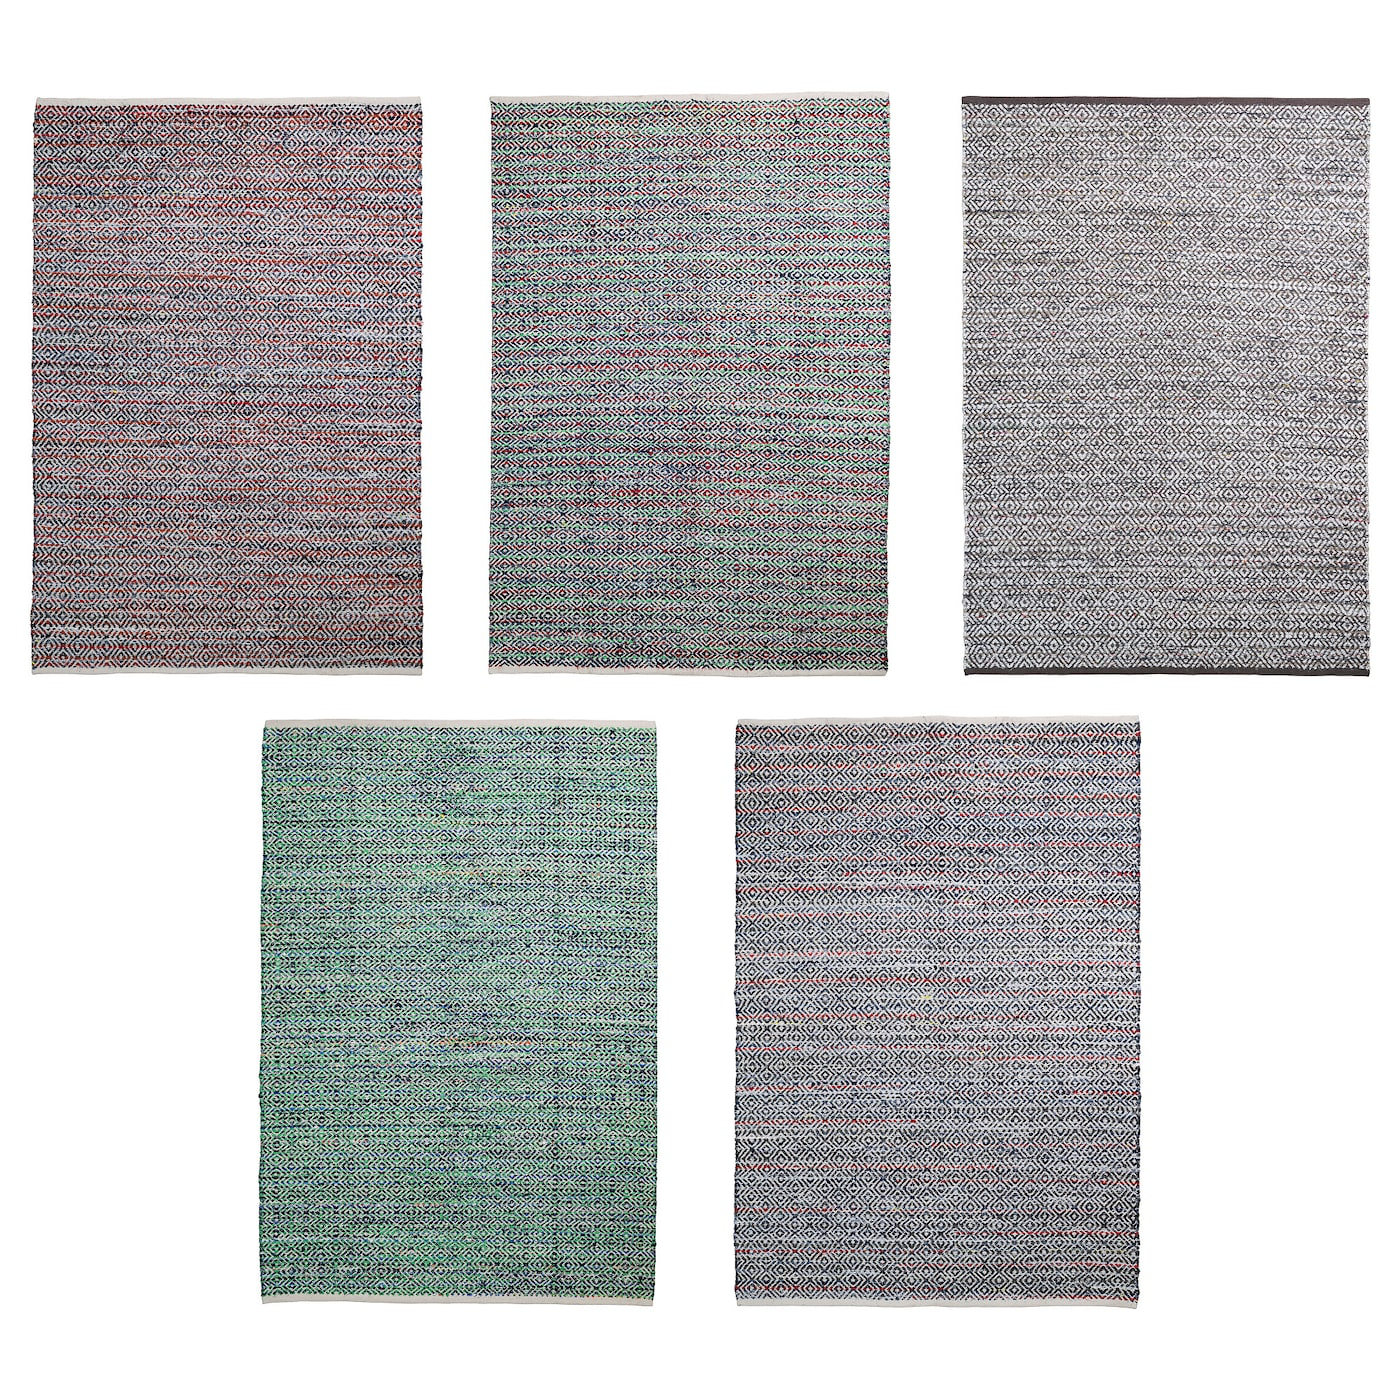 IKEA FORLEV rug, flatwoven Handwoven by skilled craftspeople, and therefore unique.